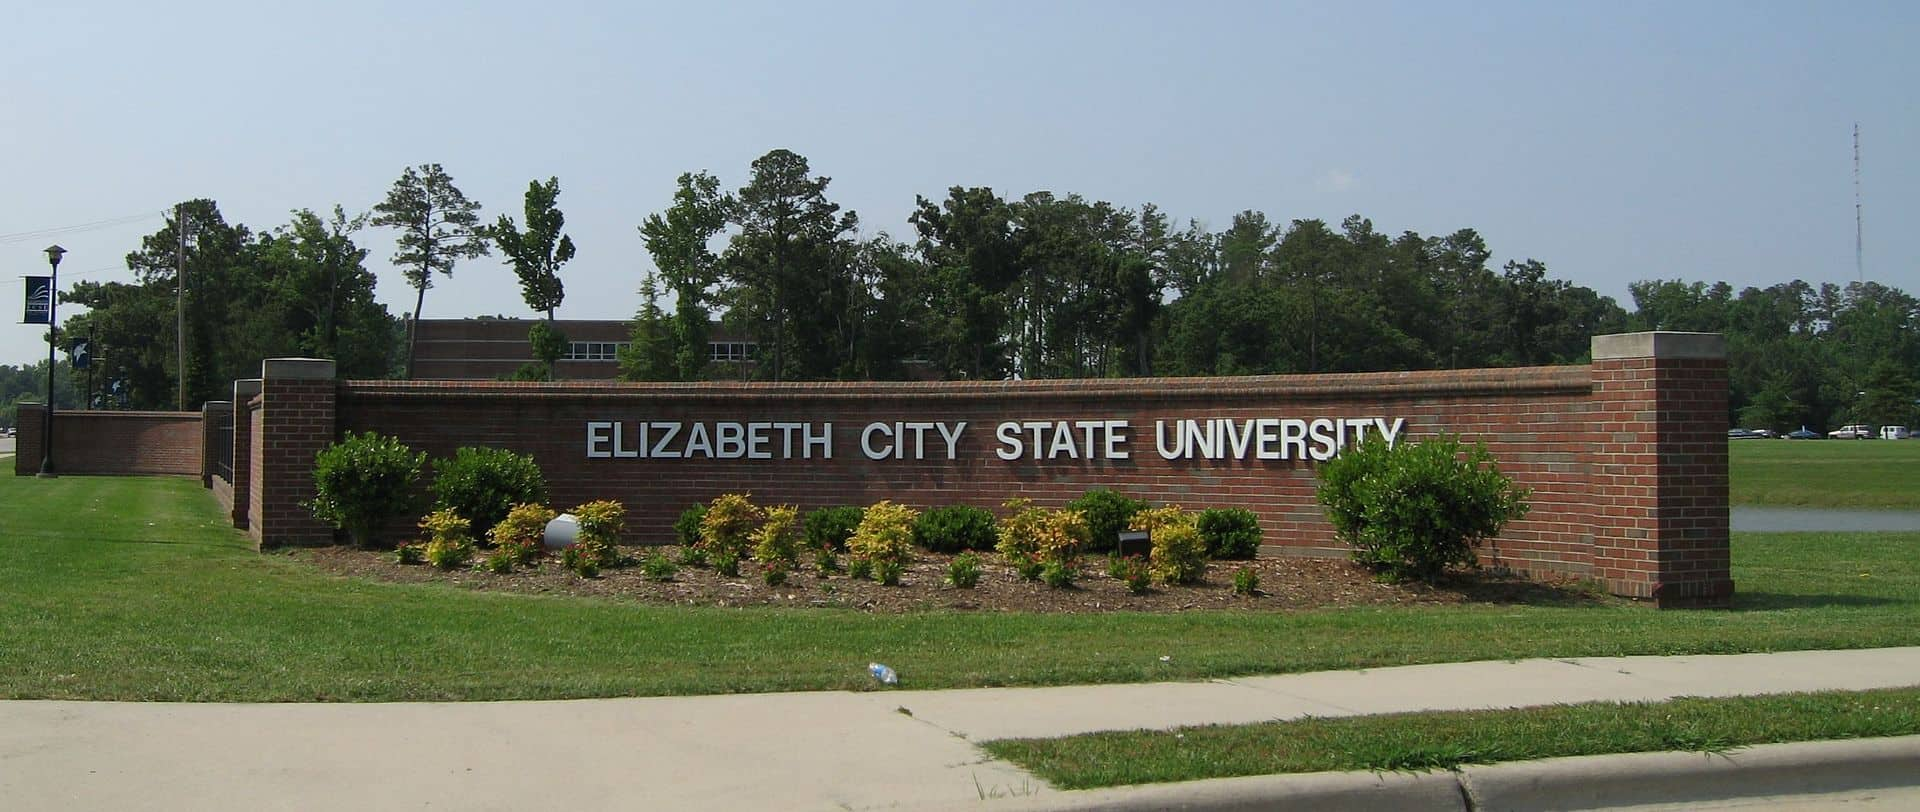 Most_Affordable_Colleges_Universities_Elizebeth_City_State_University